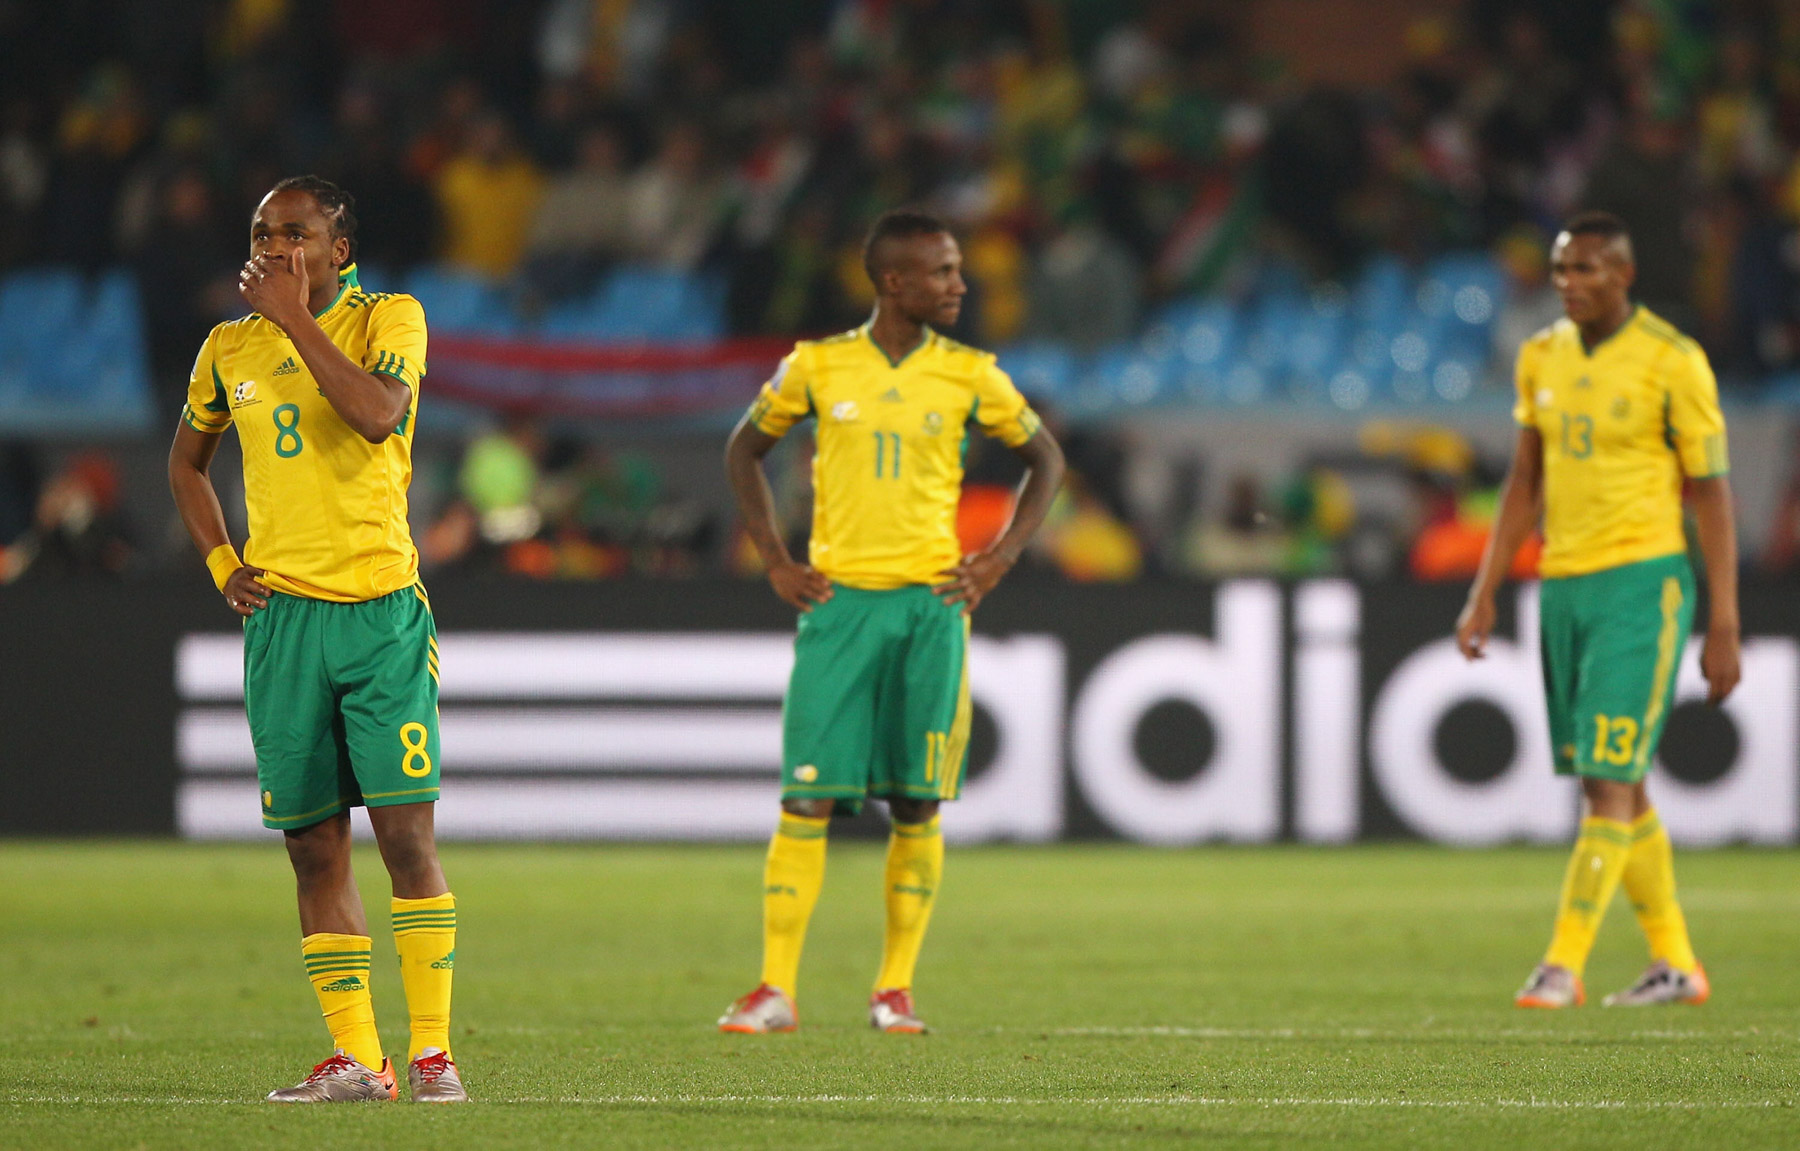 16 June 2010: South Africa's Siphiwe Tshabalala, Teko Modise and Kagisho Dikgacoi look dejected after Bafana's defeat to Uruguay. (Photograph by Michael Steele/ Getty Images)